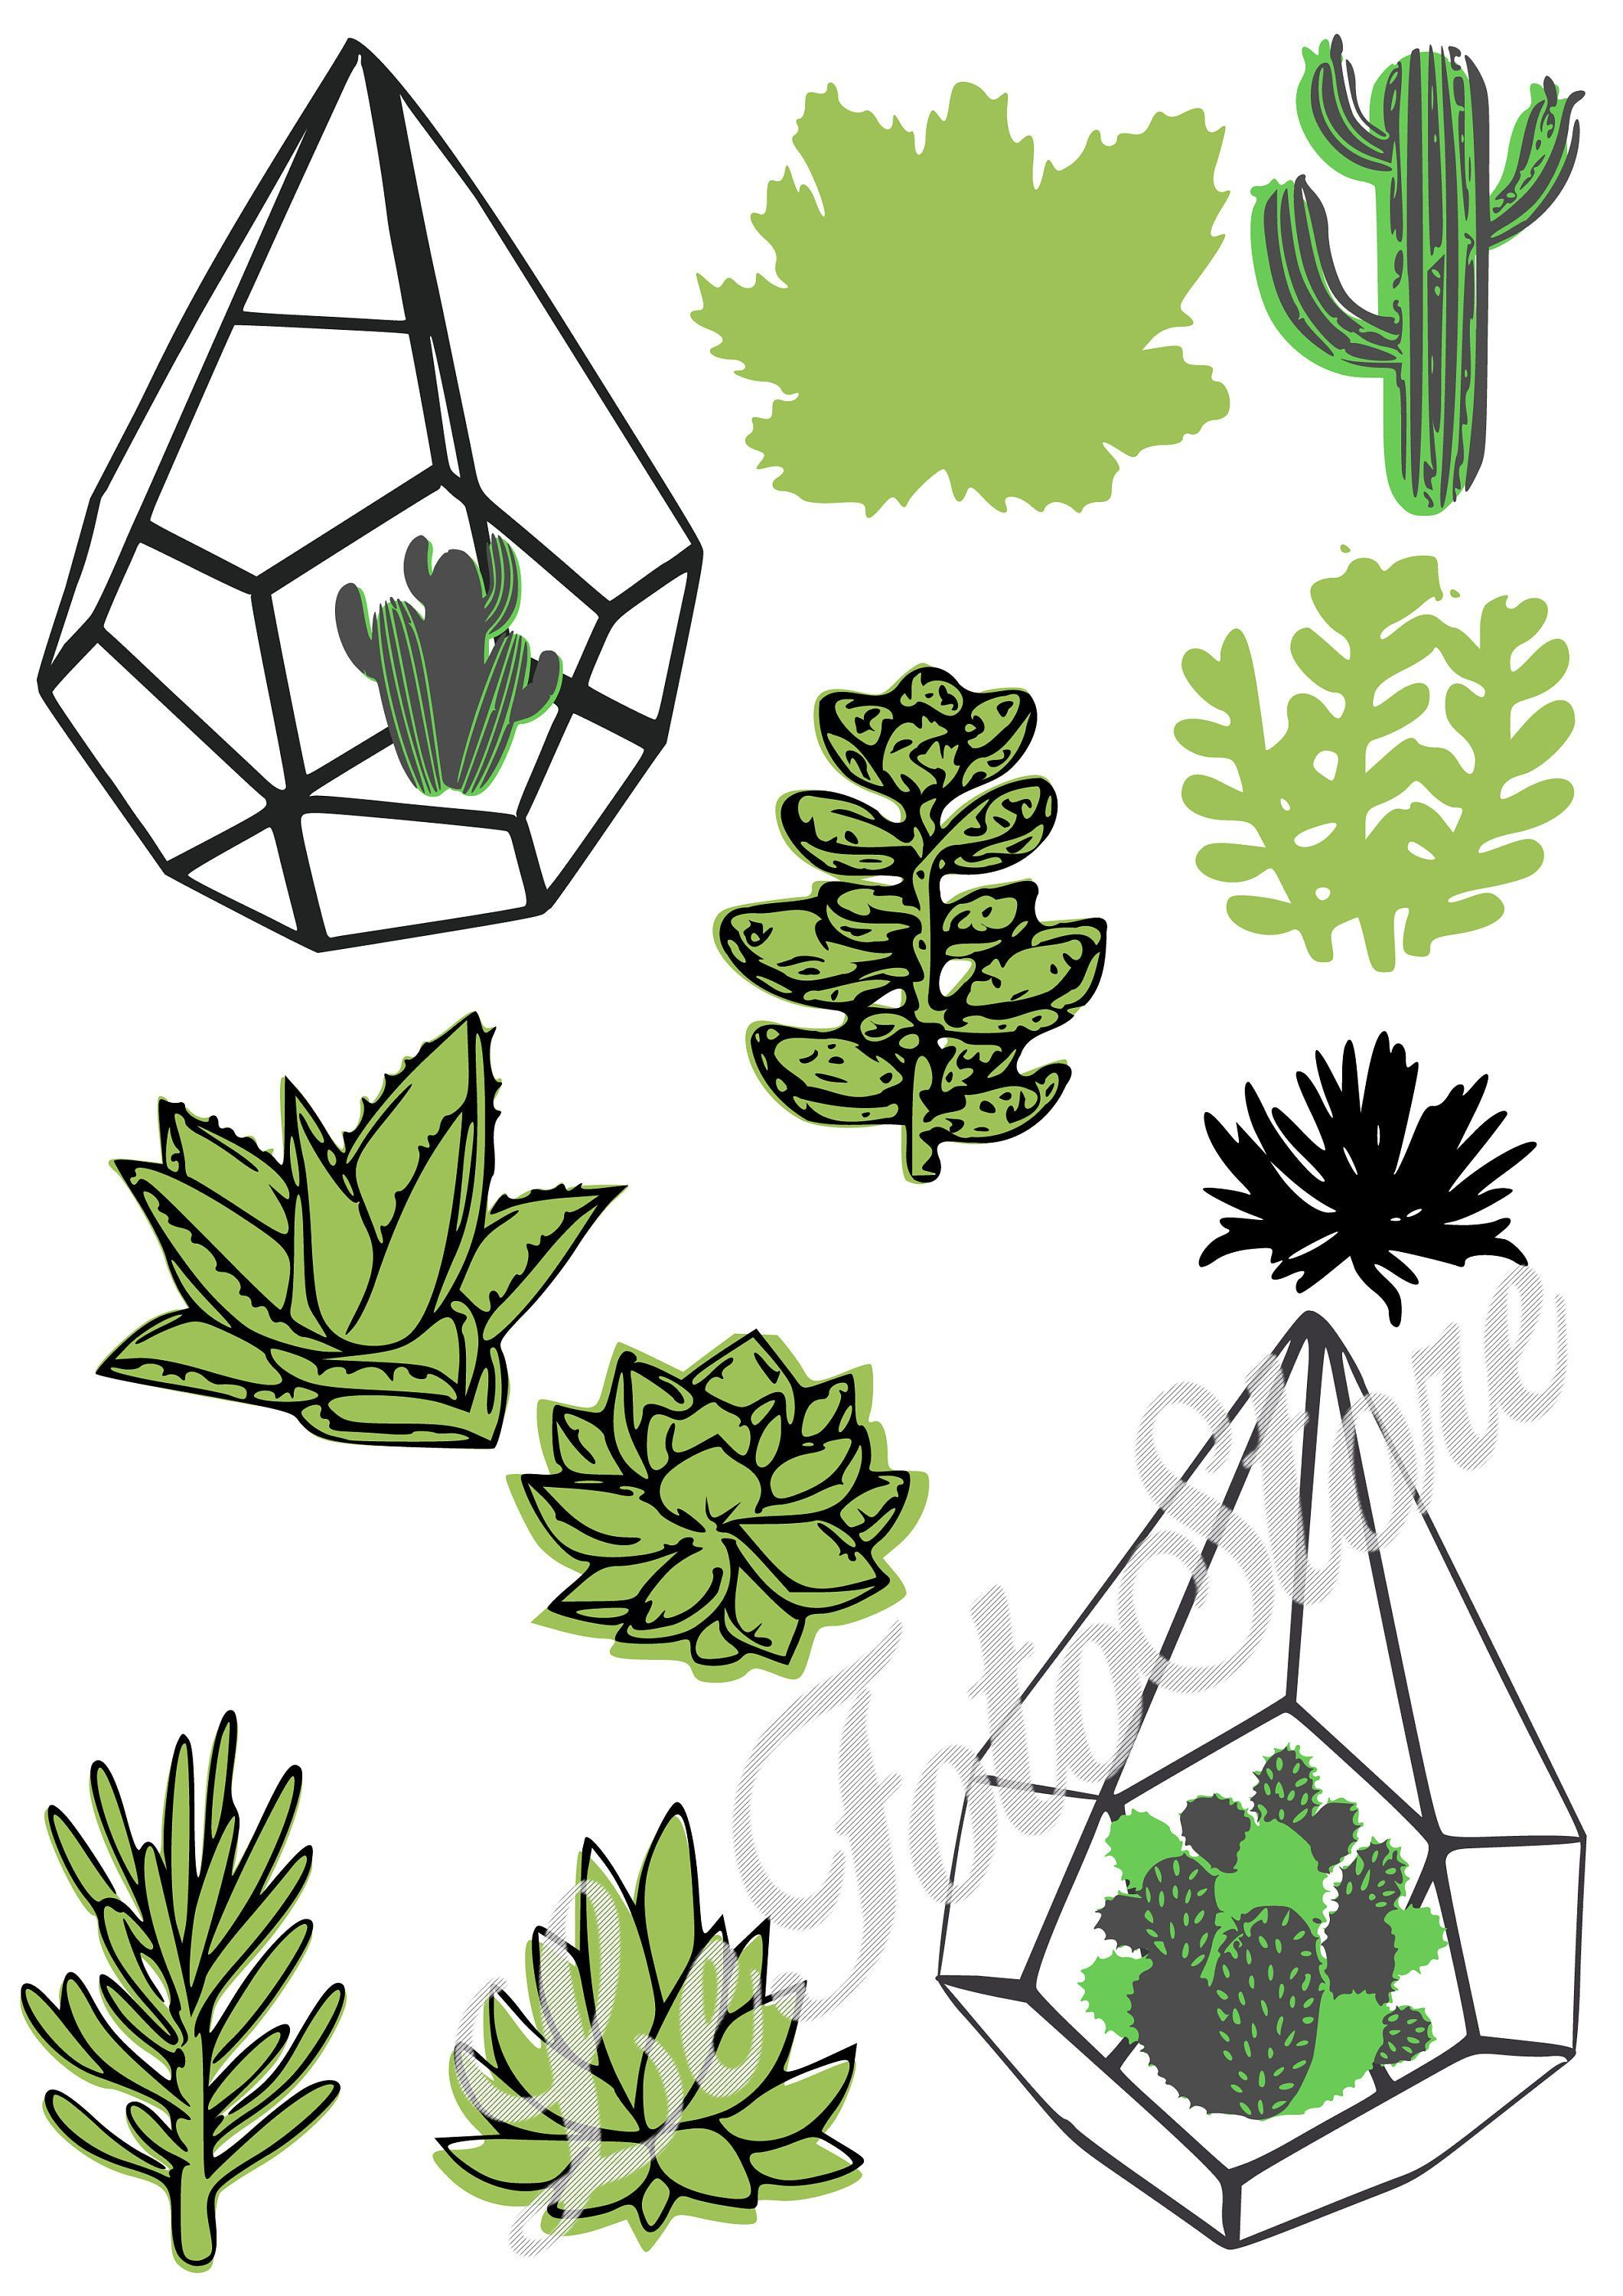 Succulent clipart for cricut free Cactus SVG Files for Cricut, Cacti SVG bundle, SVG Cactus ... free